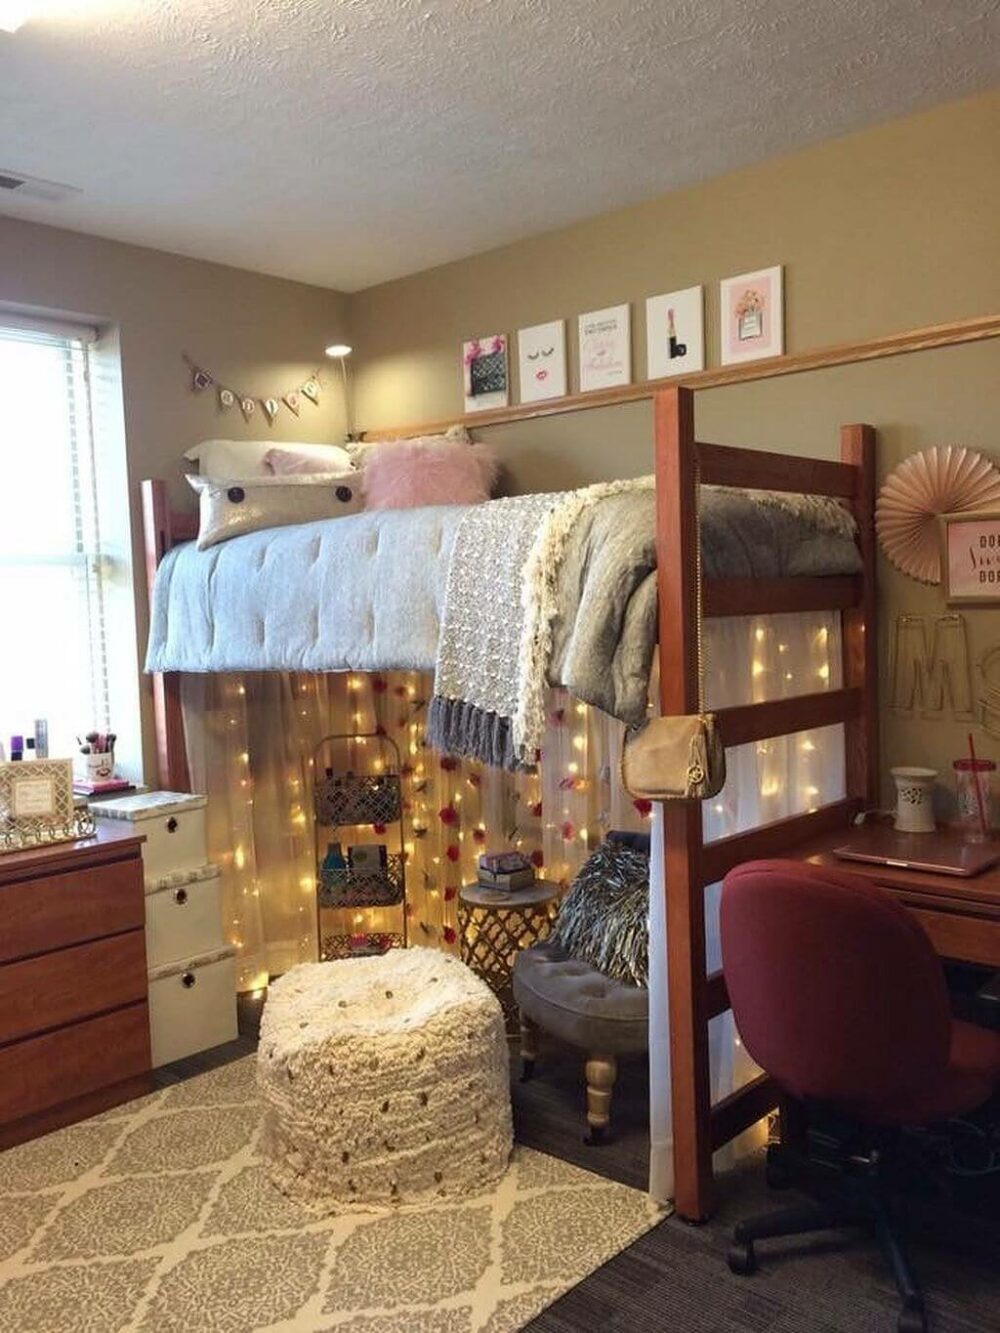 dorm room ideas bunk beds